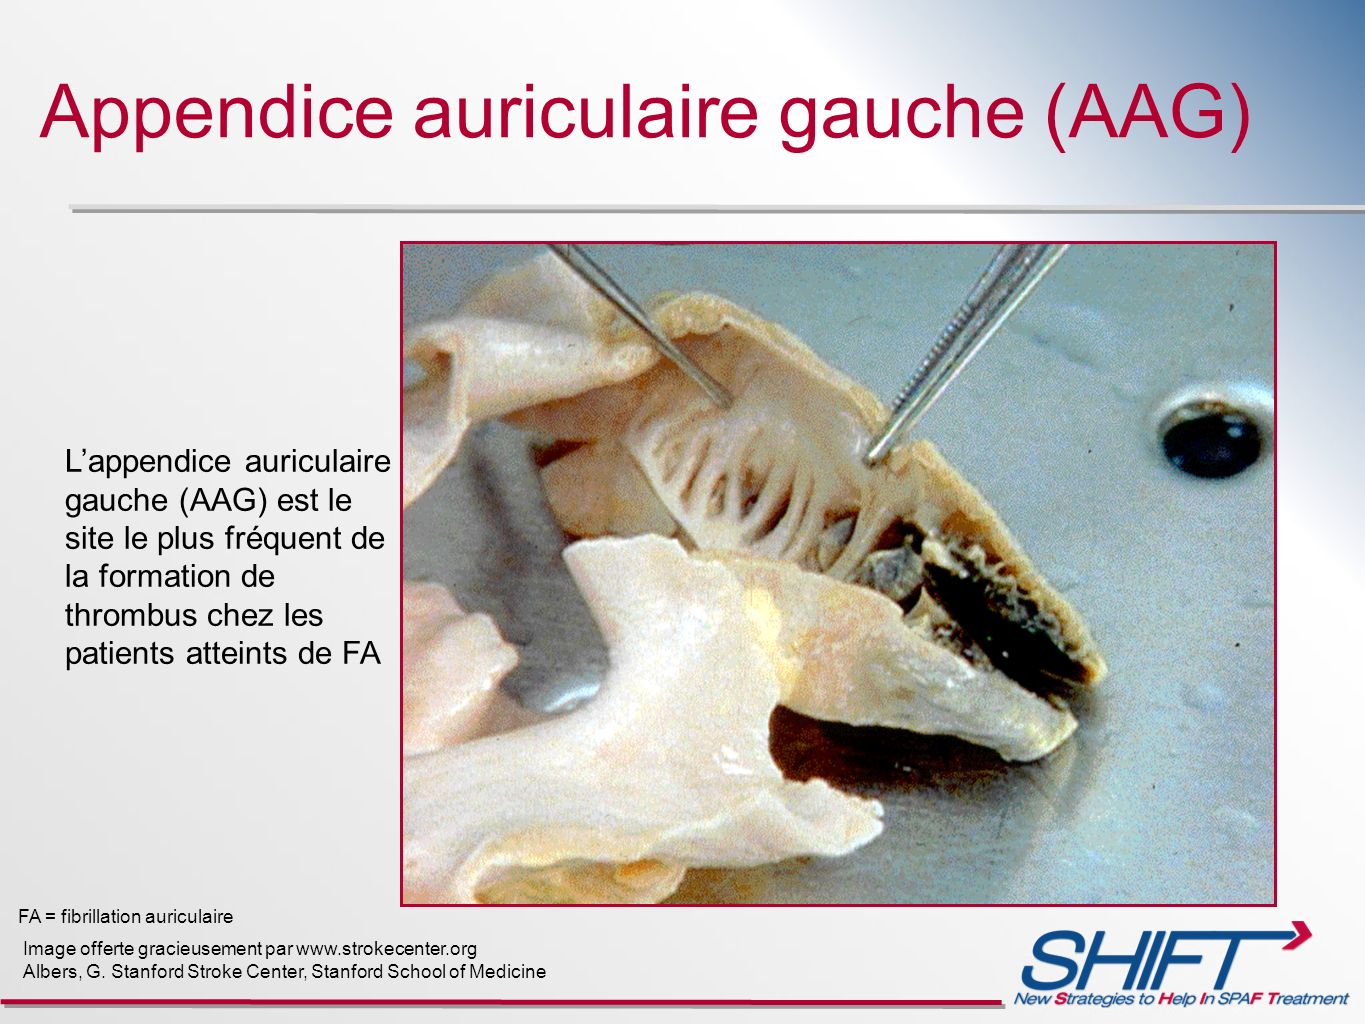 Appendice auriculaire gauche (AAG)